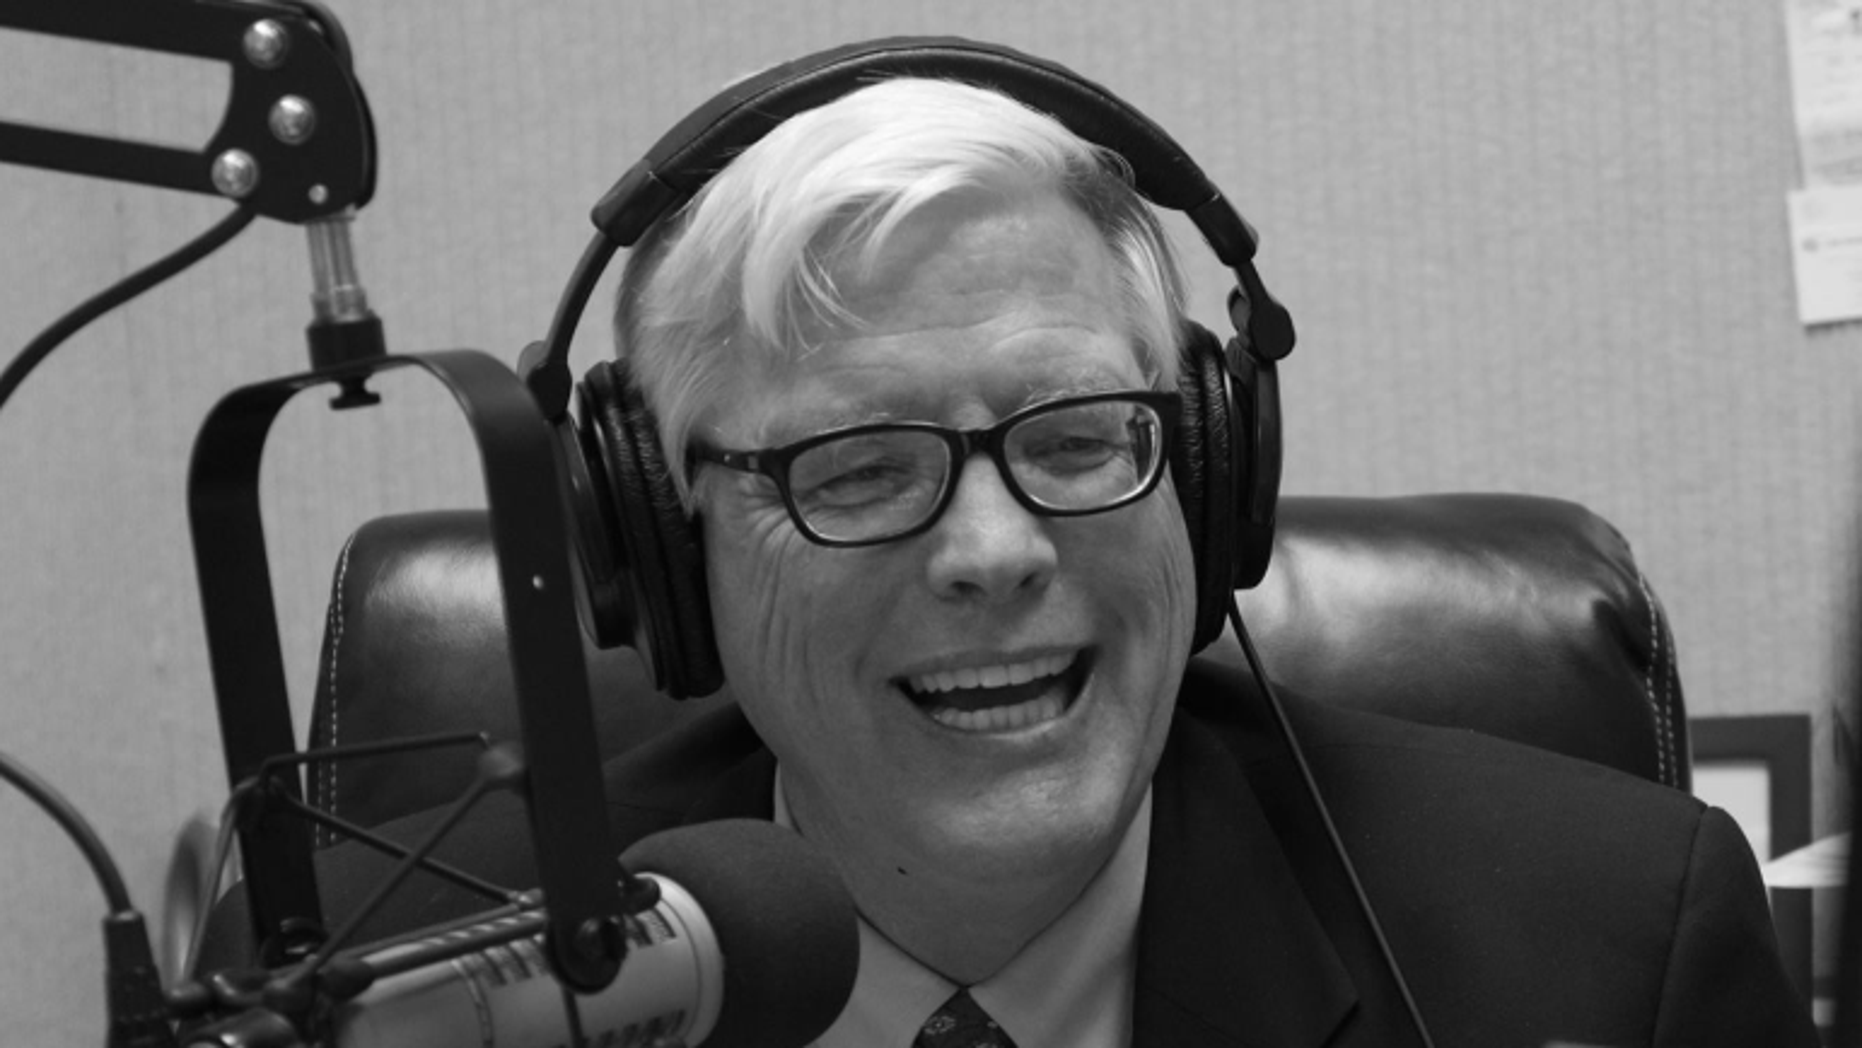 Radio host Hugh Hewitt apologized Tuesday after a joke he made on his radio program received pushback.